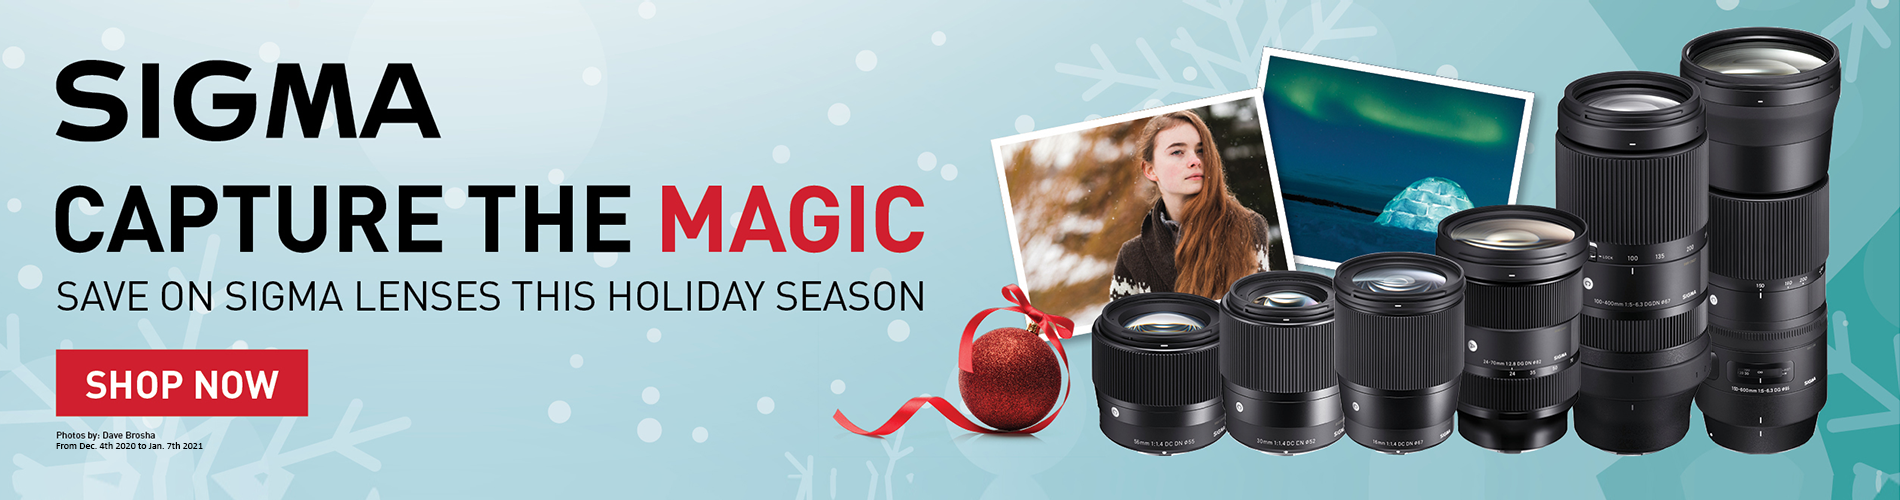 Sigma Holiday promotions